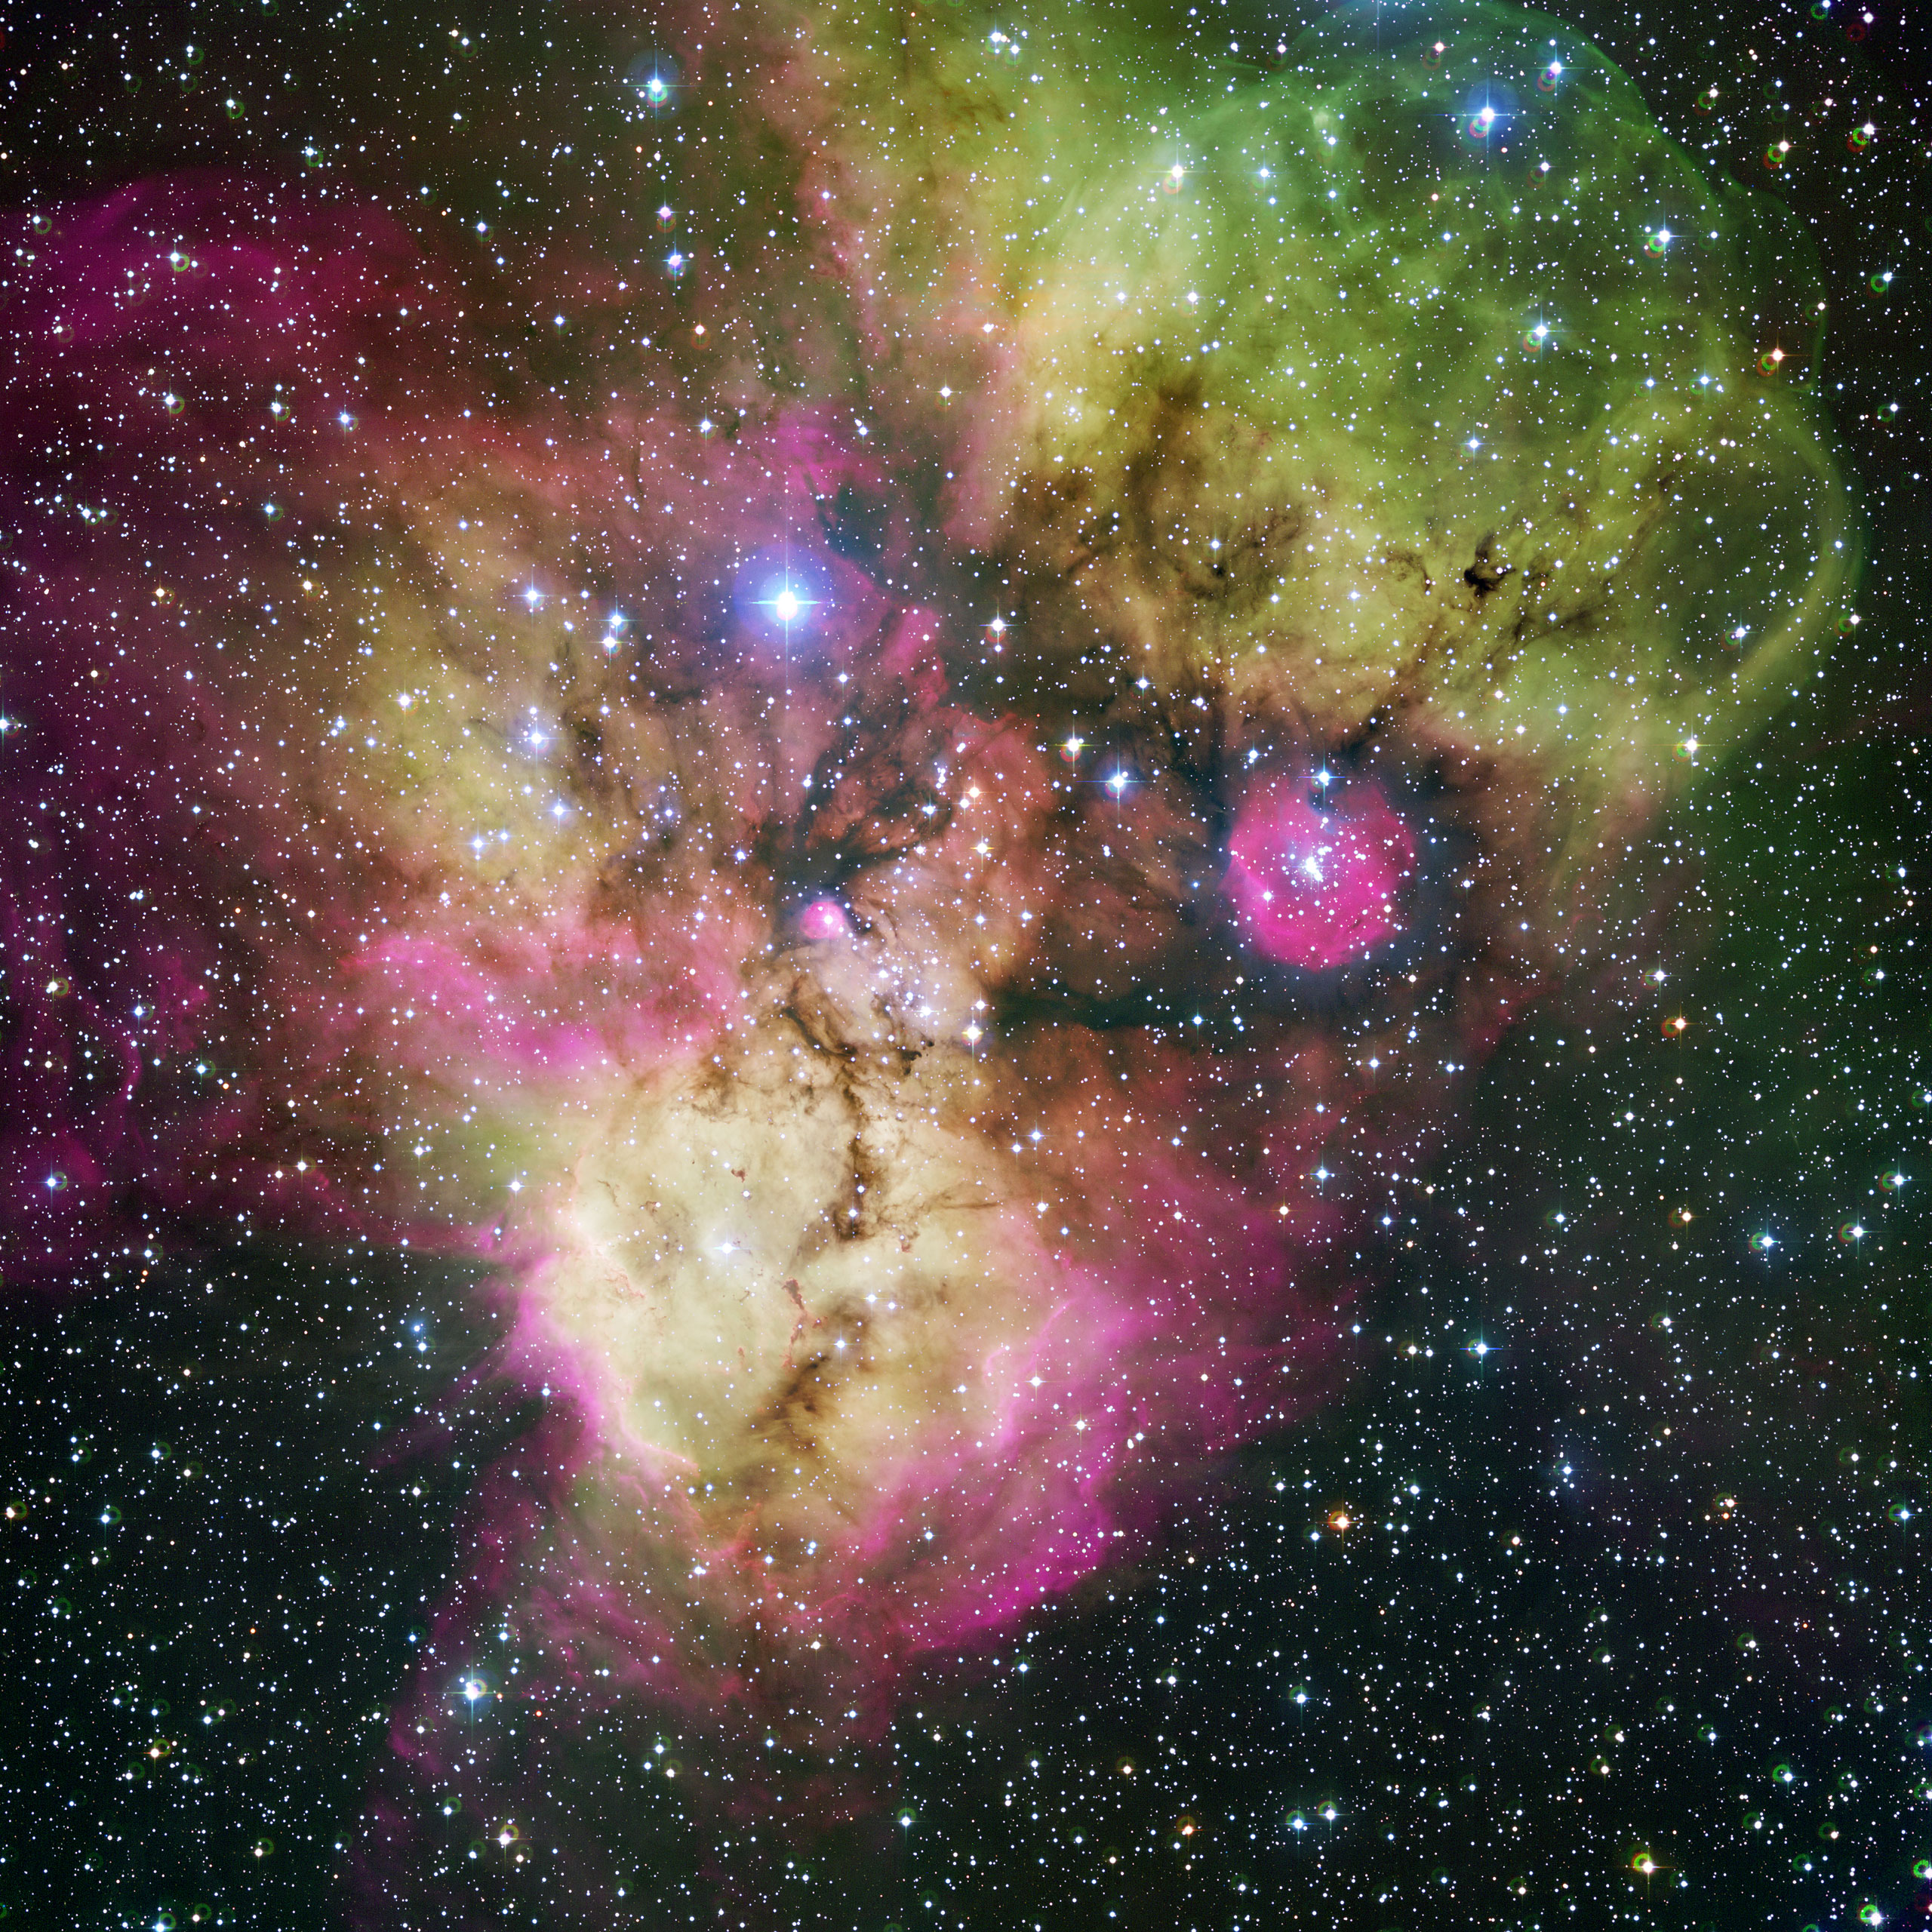 Franken Nebula The stellar cluster NGC 2467, also known as Franken Nebula, is located in the southern constellation of Puppis. NGC 2467 is a very active stellar nursery, where new stars are born continuously from large clouds of dust and gas.